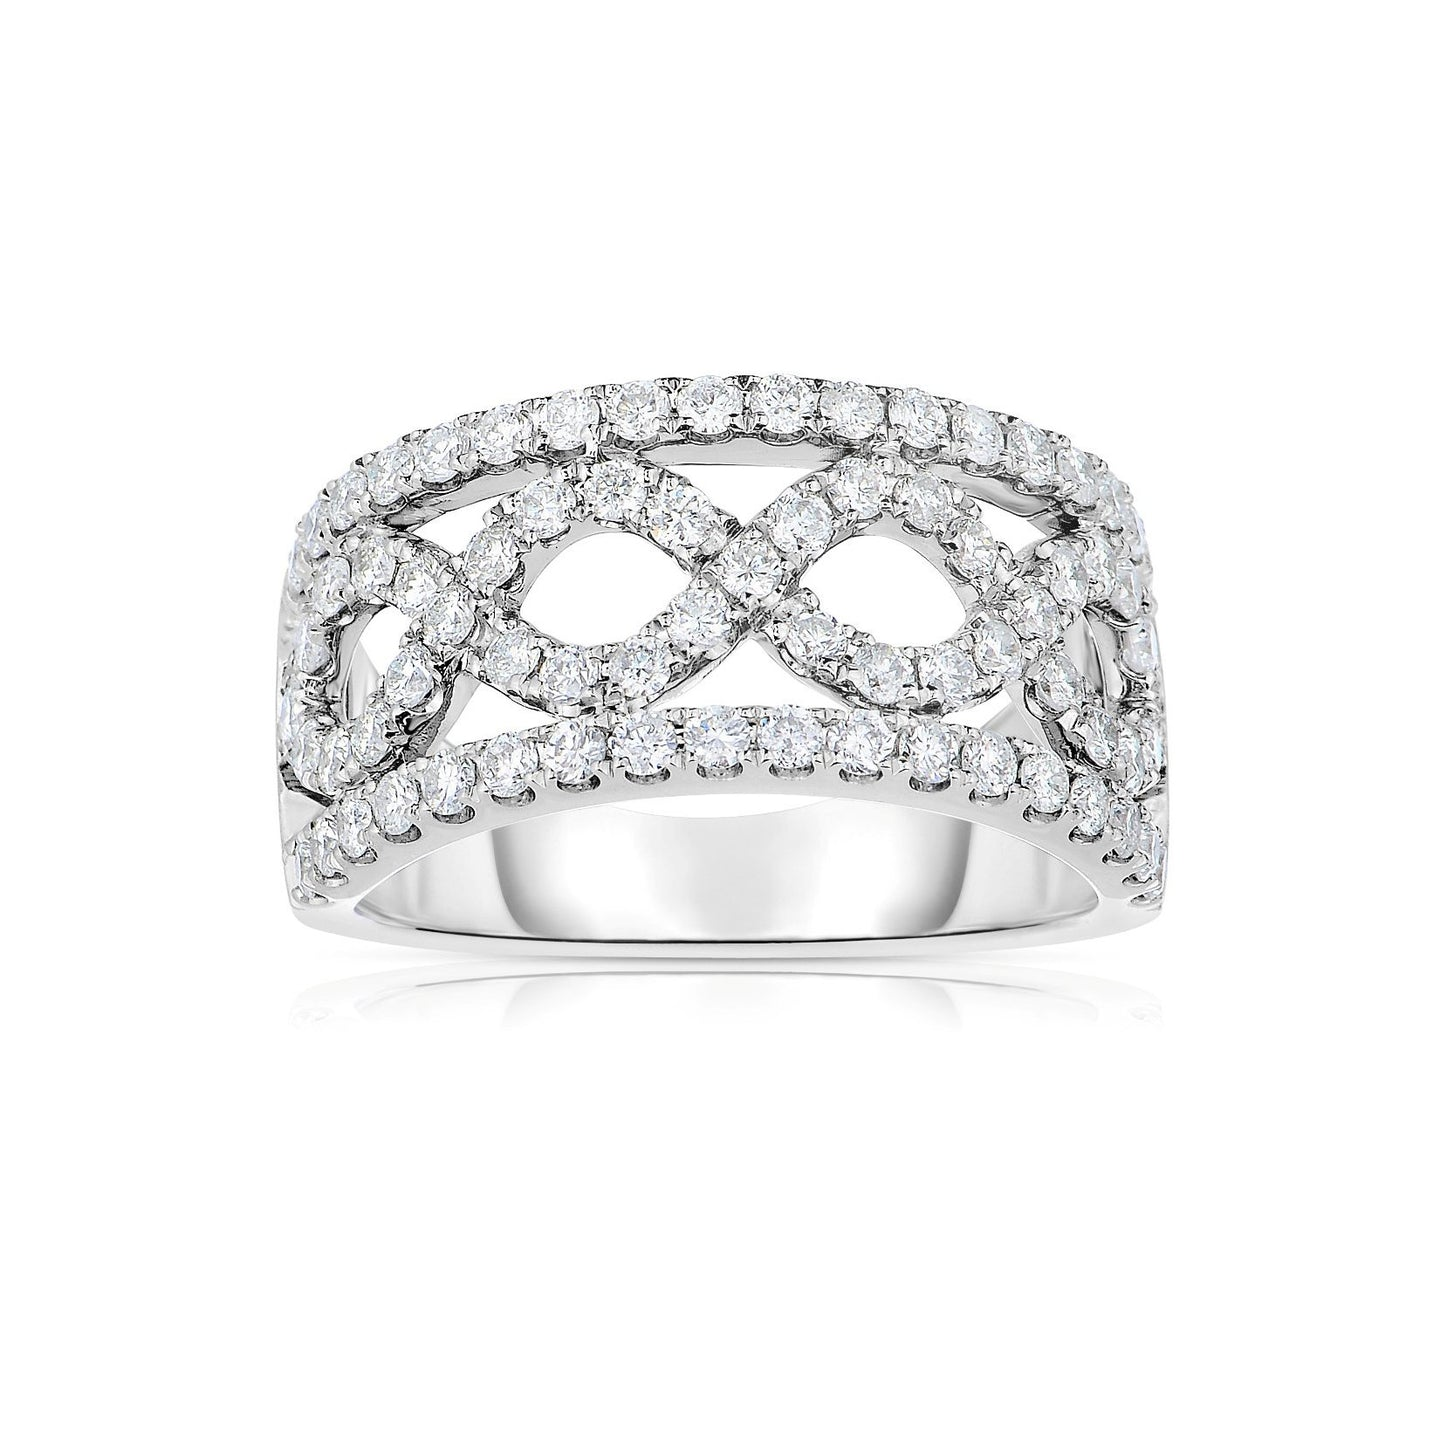 Sabel Collection 14K White Gold Infinity Design Diamond Ring